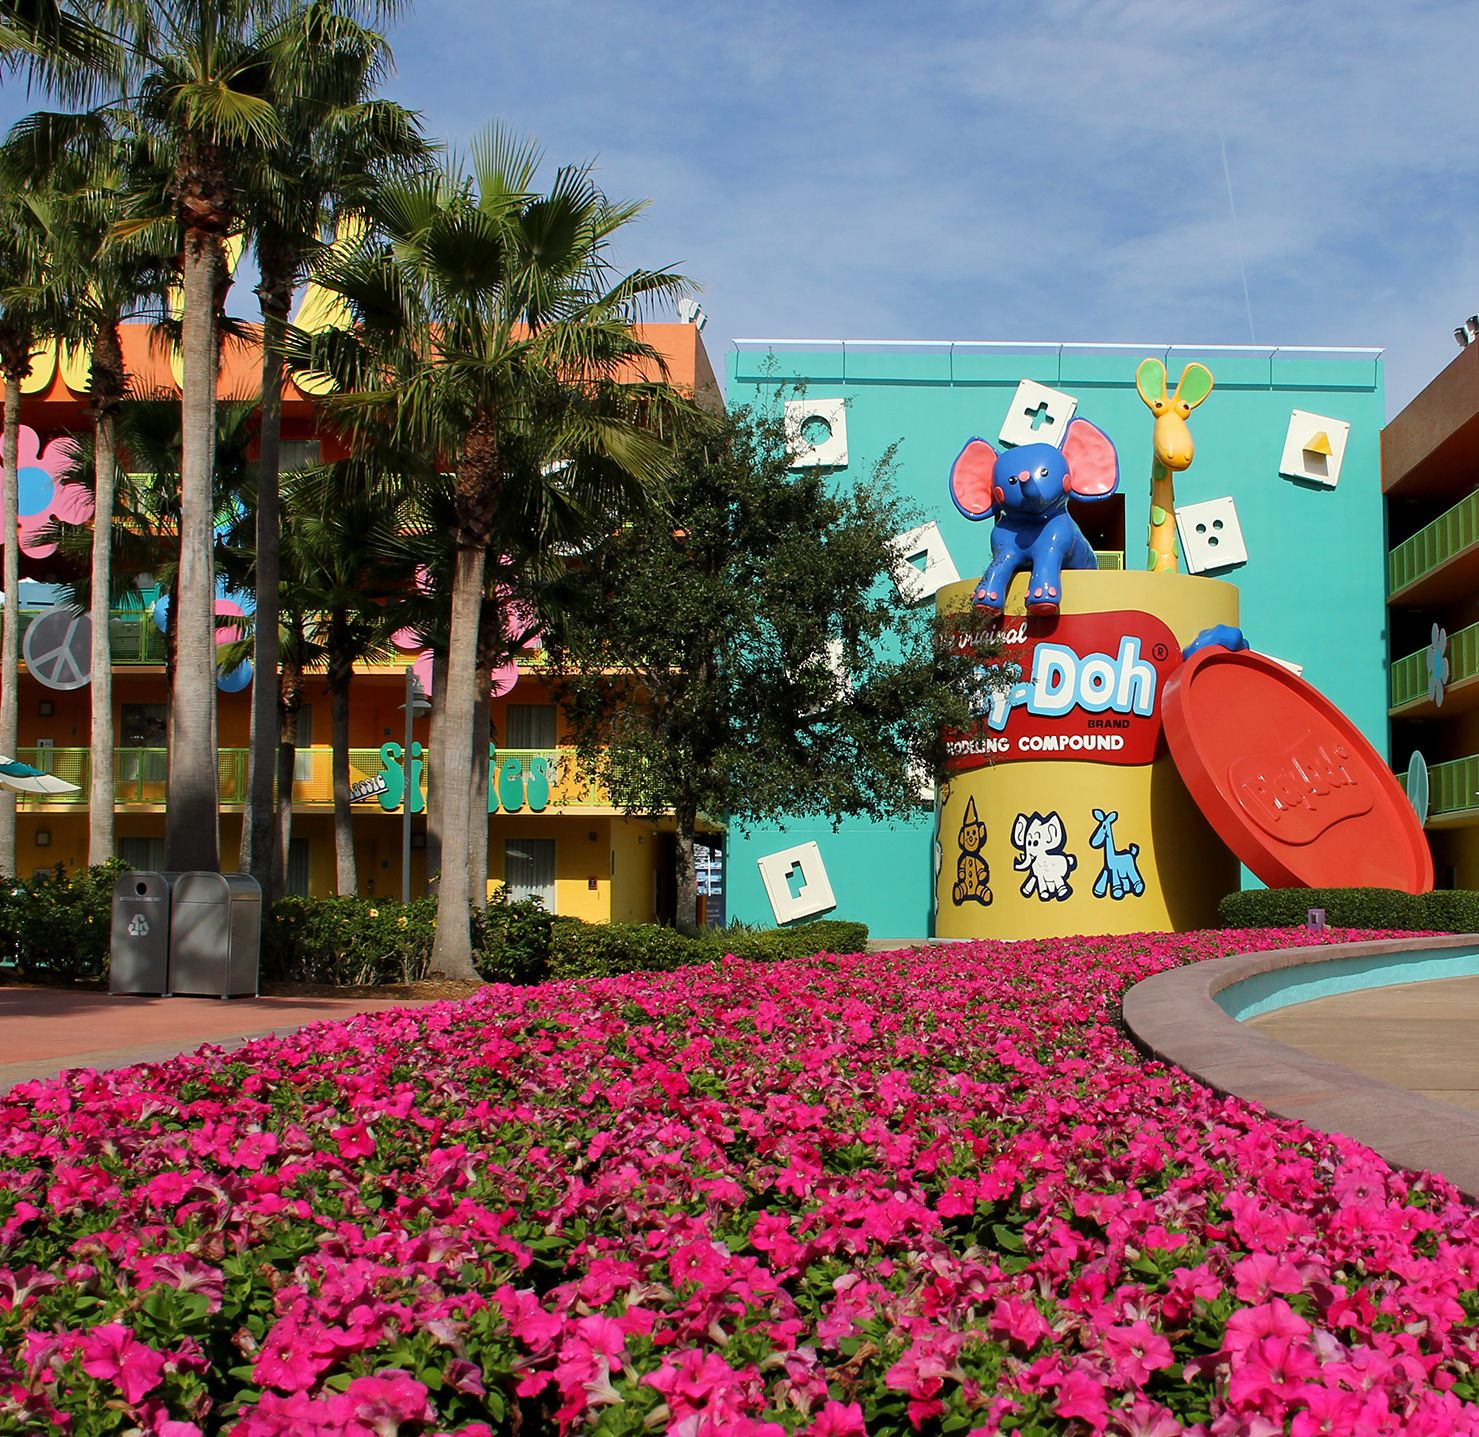 What can you tell me about the Disney Vacation Club How